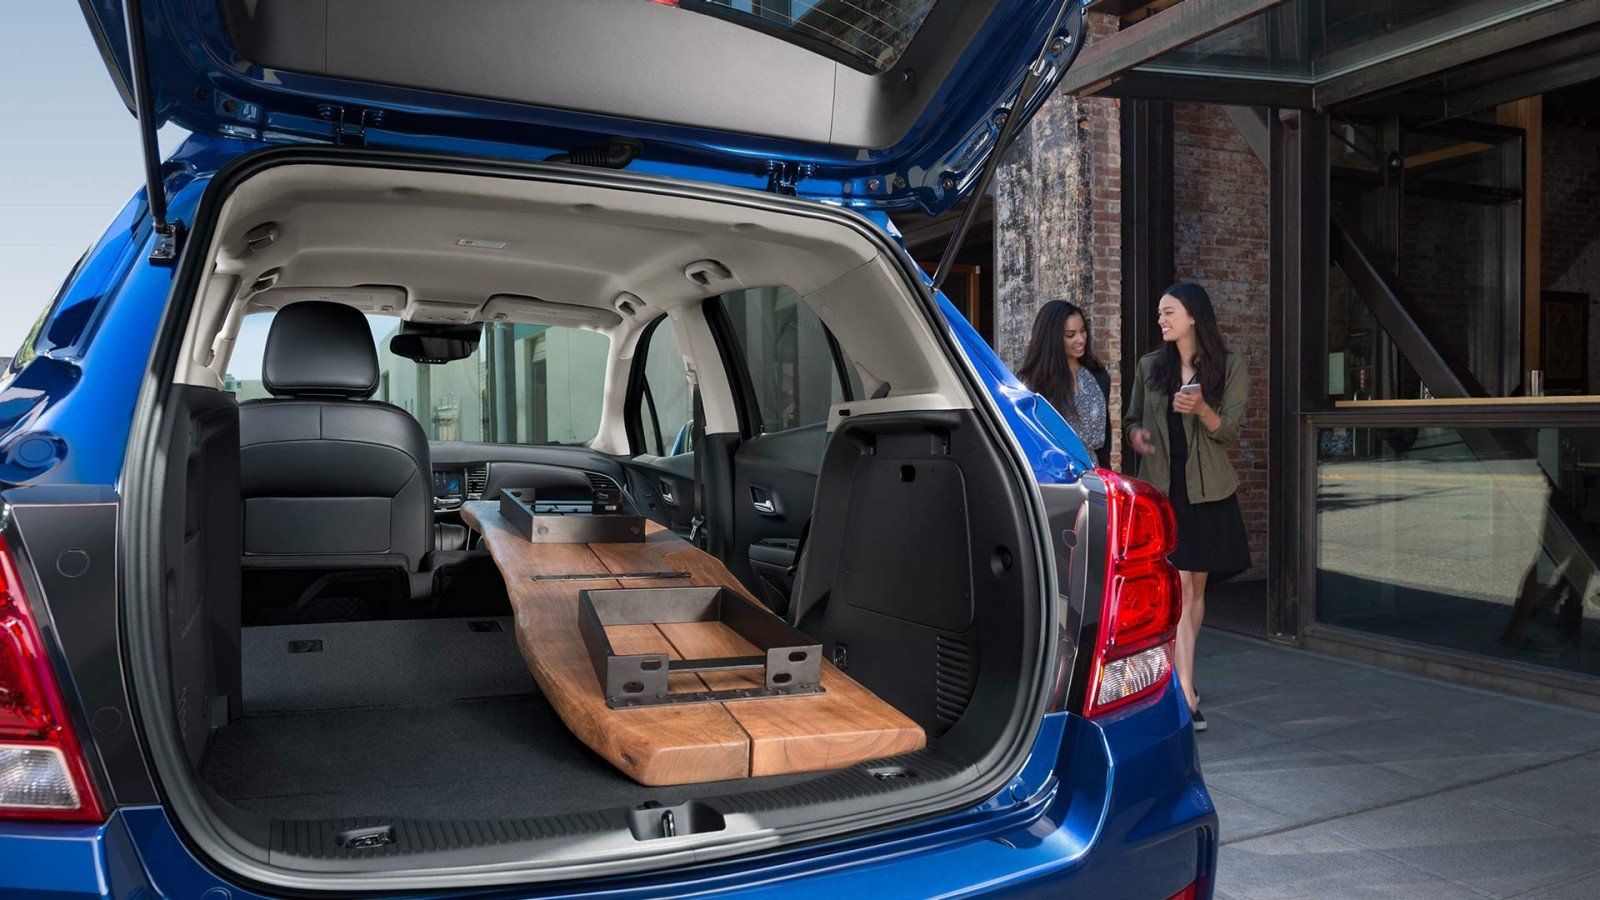 2017 Chevy Trax for Sale in Chicago, IL - Kingdom Chevrolet